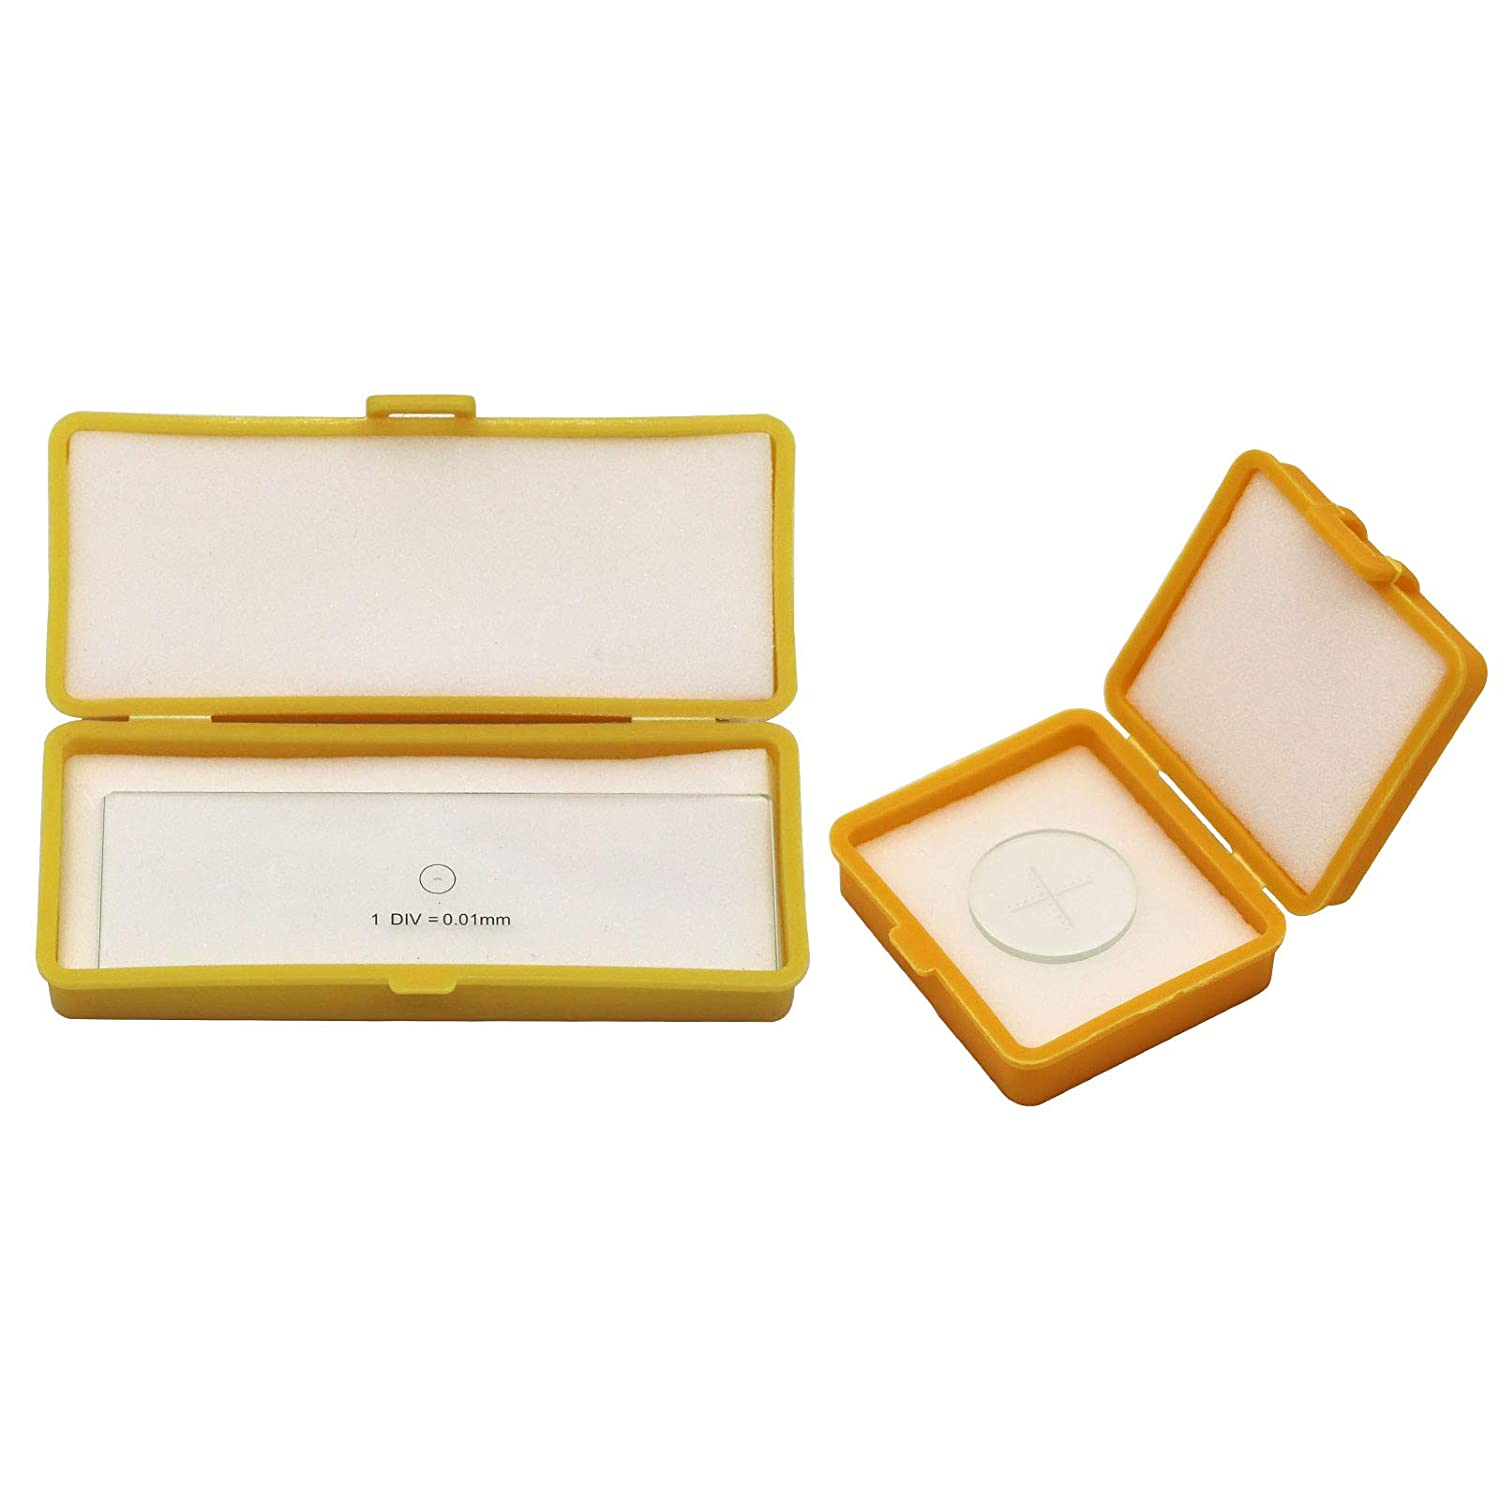 Microscope Accessories Business, Industry & Science 0.01mm Glass ...